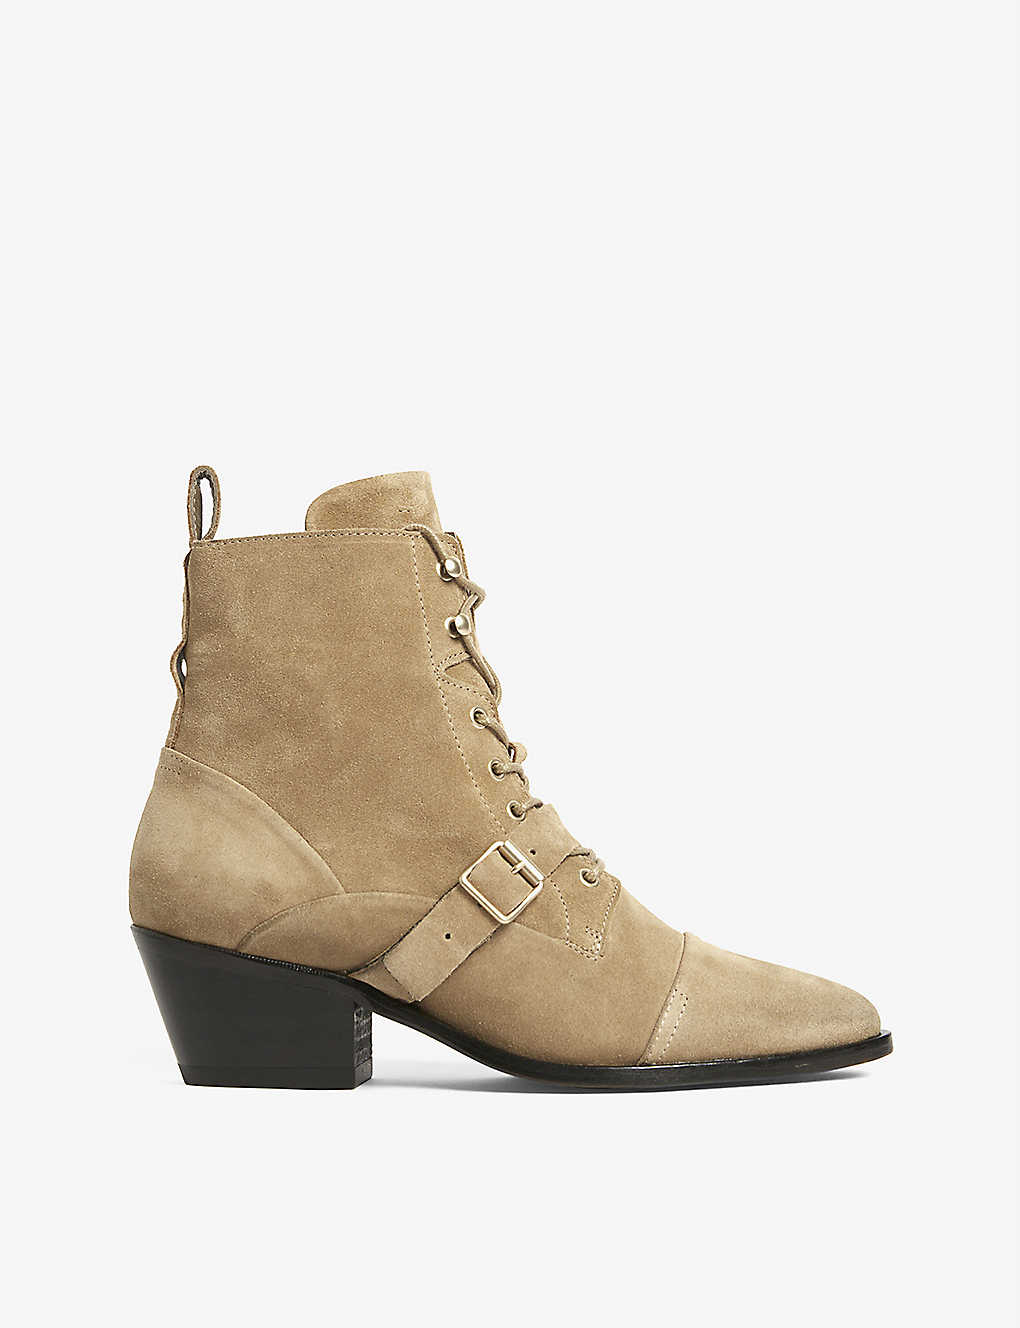 ALLSAINTS: Katy suede ankle boots